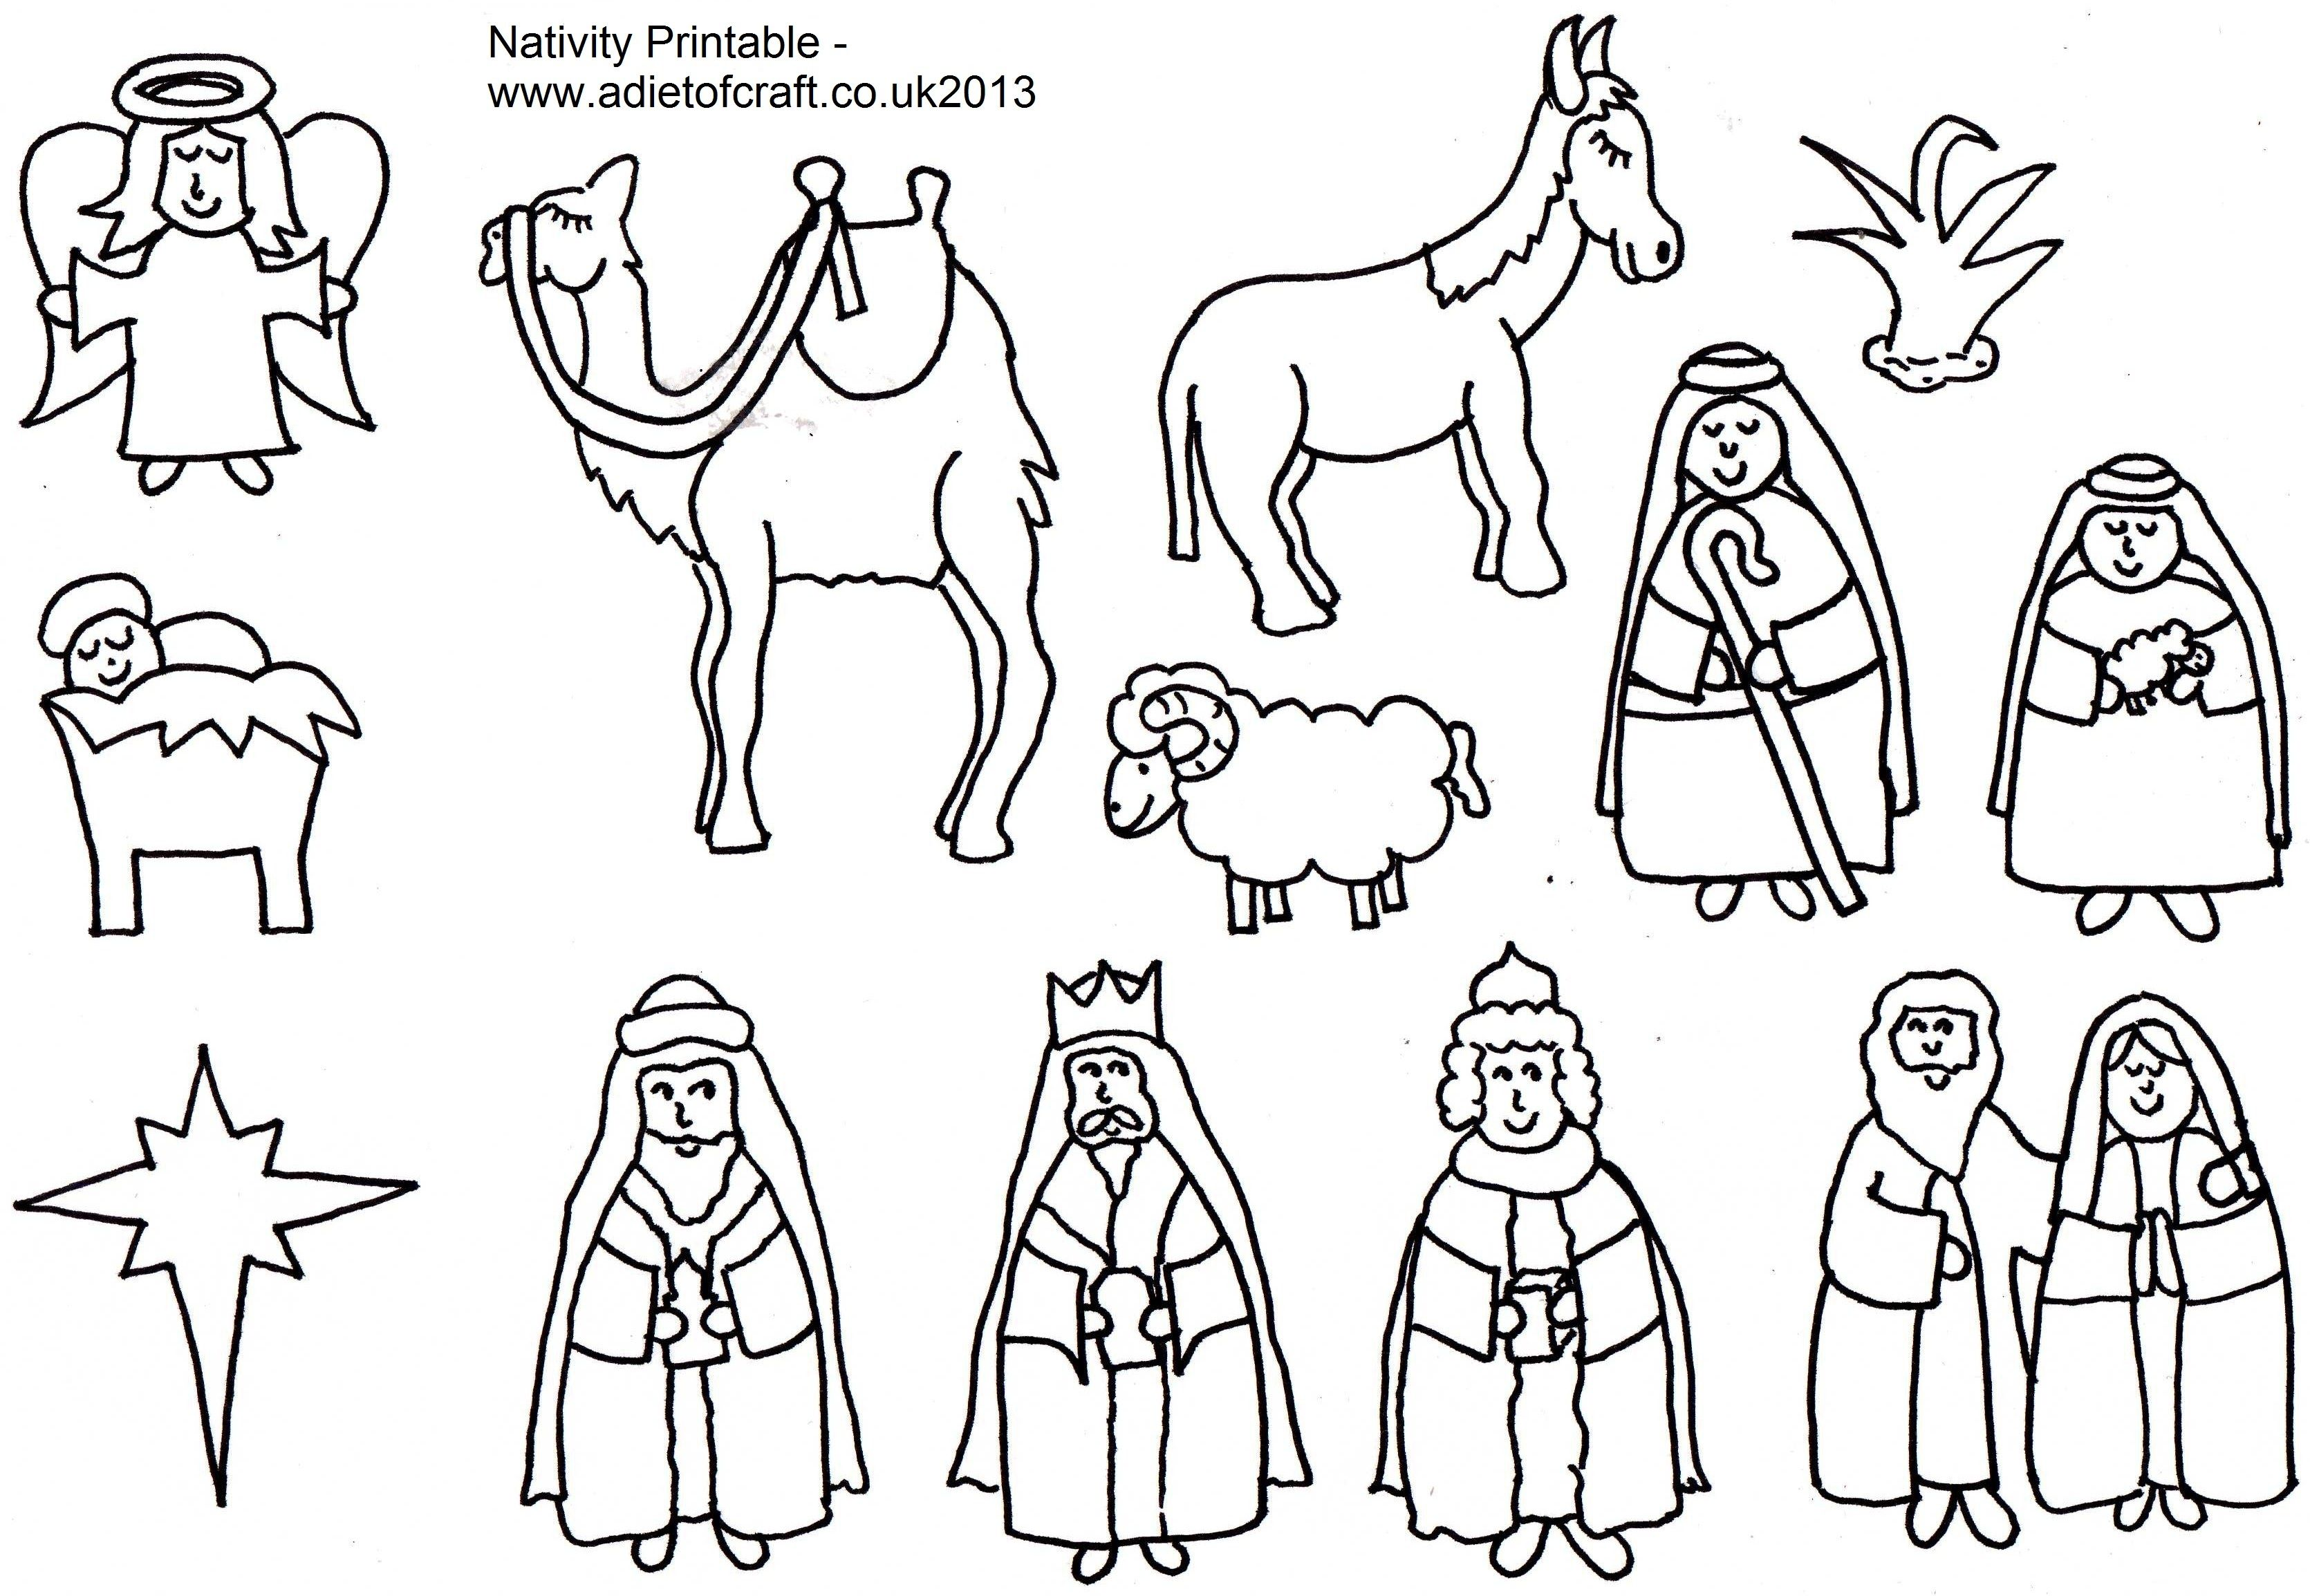 adult coloring pages of the nativity free in nativity coloring pages printable